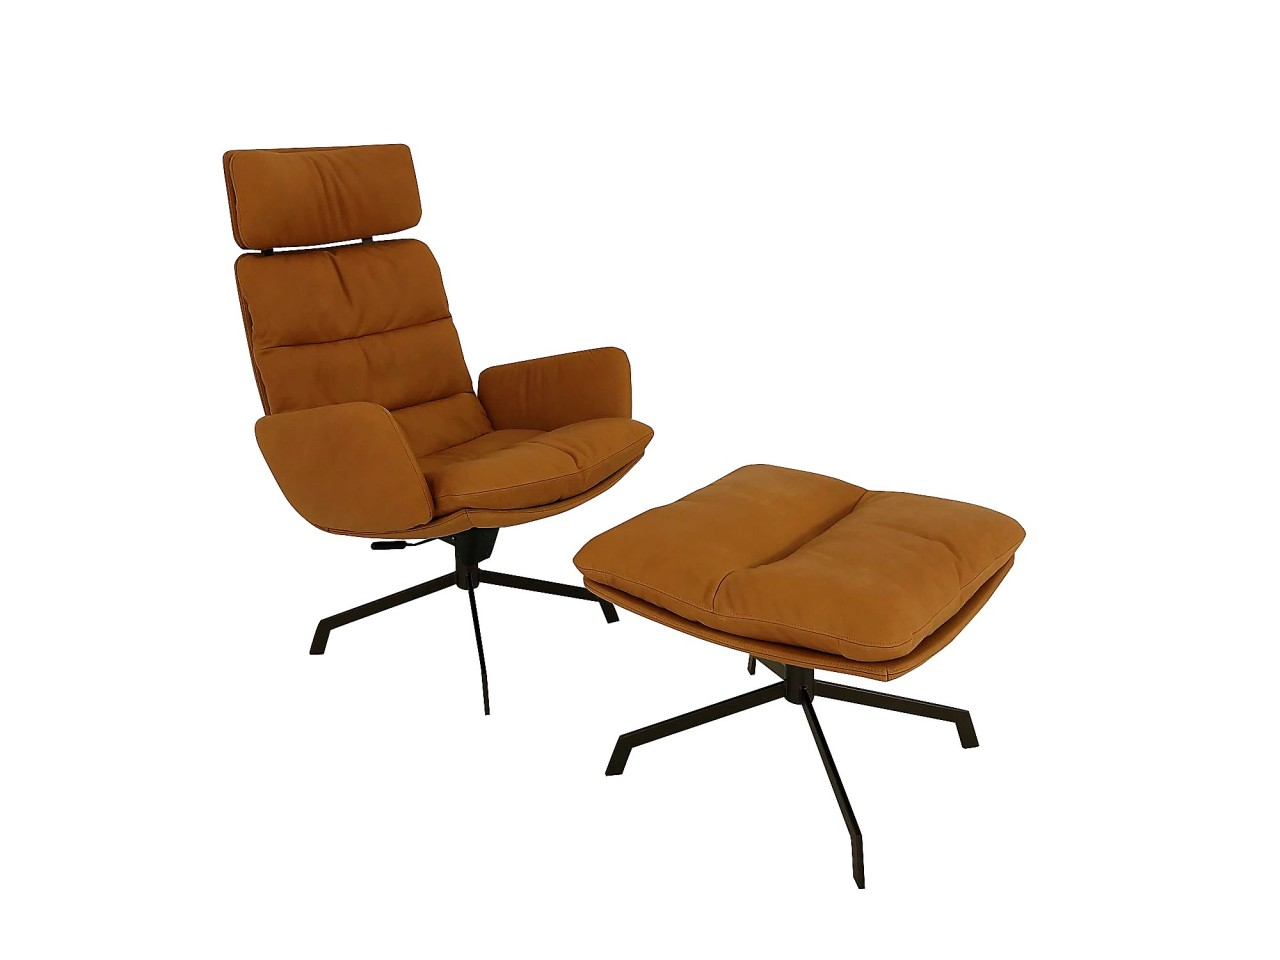 Sessel Cognac Kff Arva Lounge Sessel In Leder Silk Cognac Mit Wipp Funktion Und Hocker